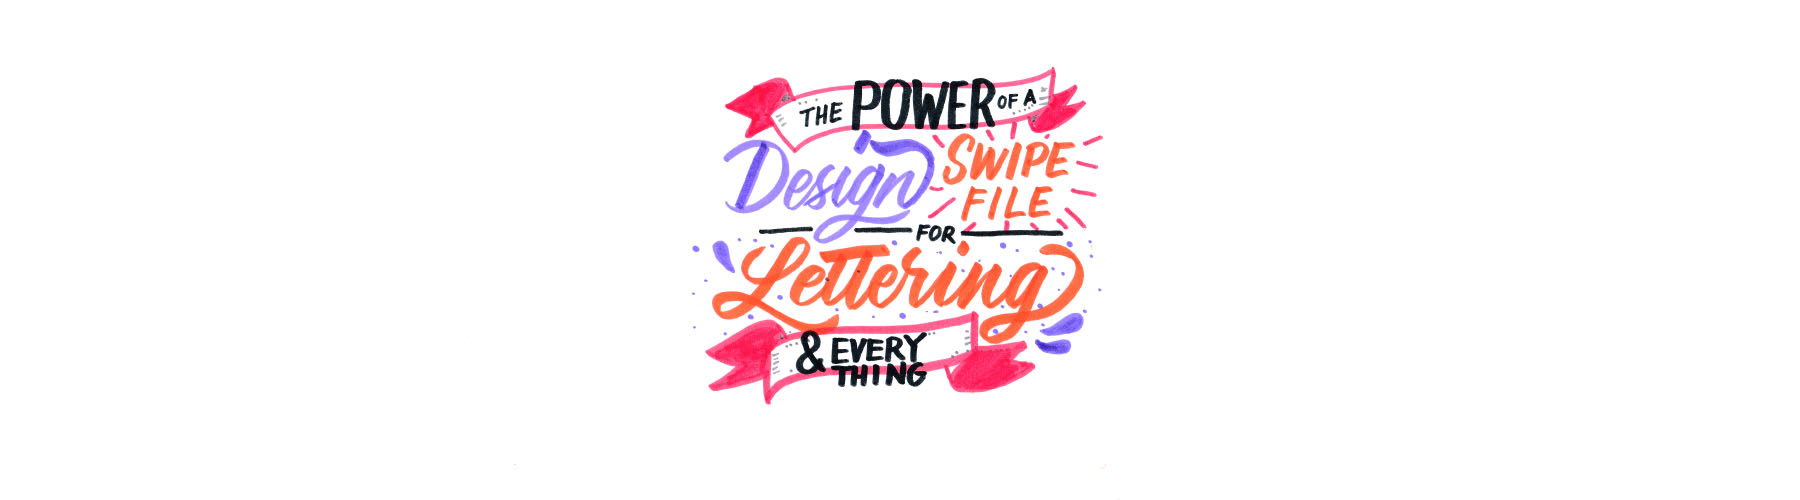 The-Power-of-a-Swipe-File-for-Lettering-and-EverythingArtboard-1.jpg